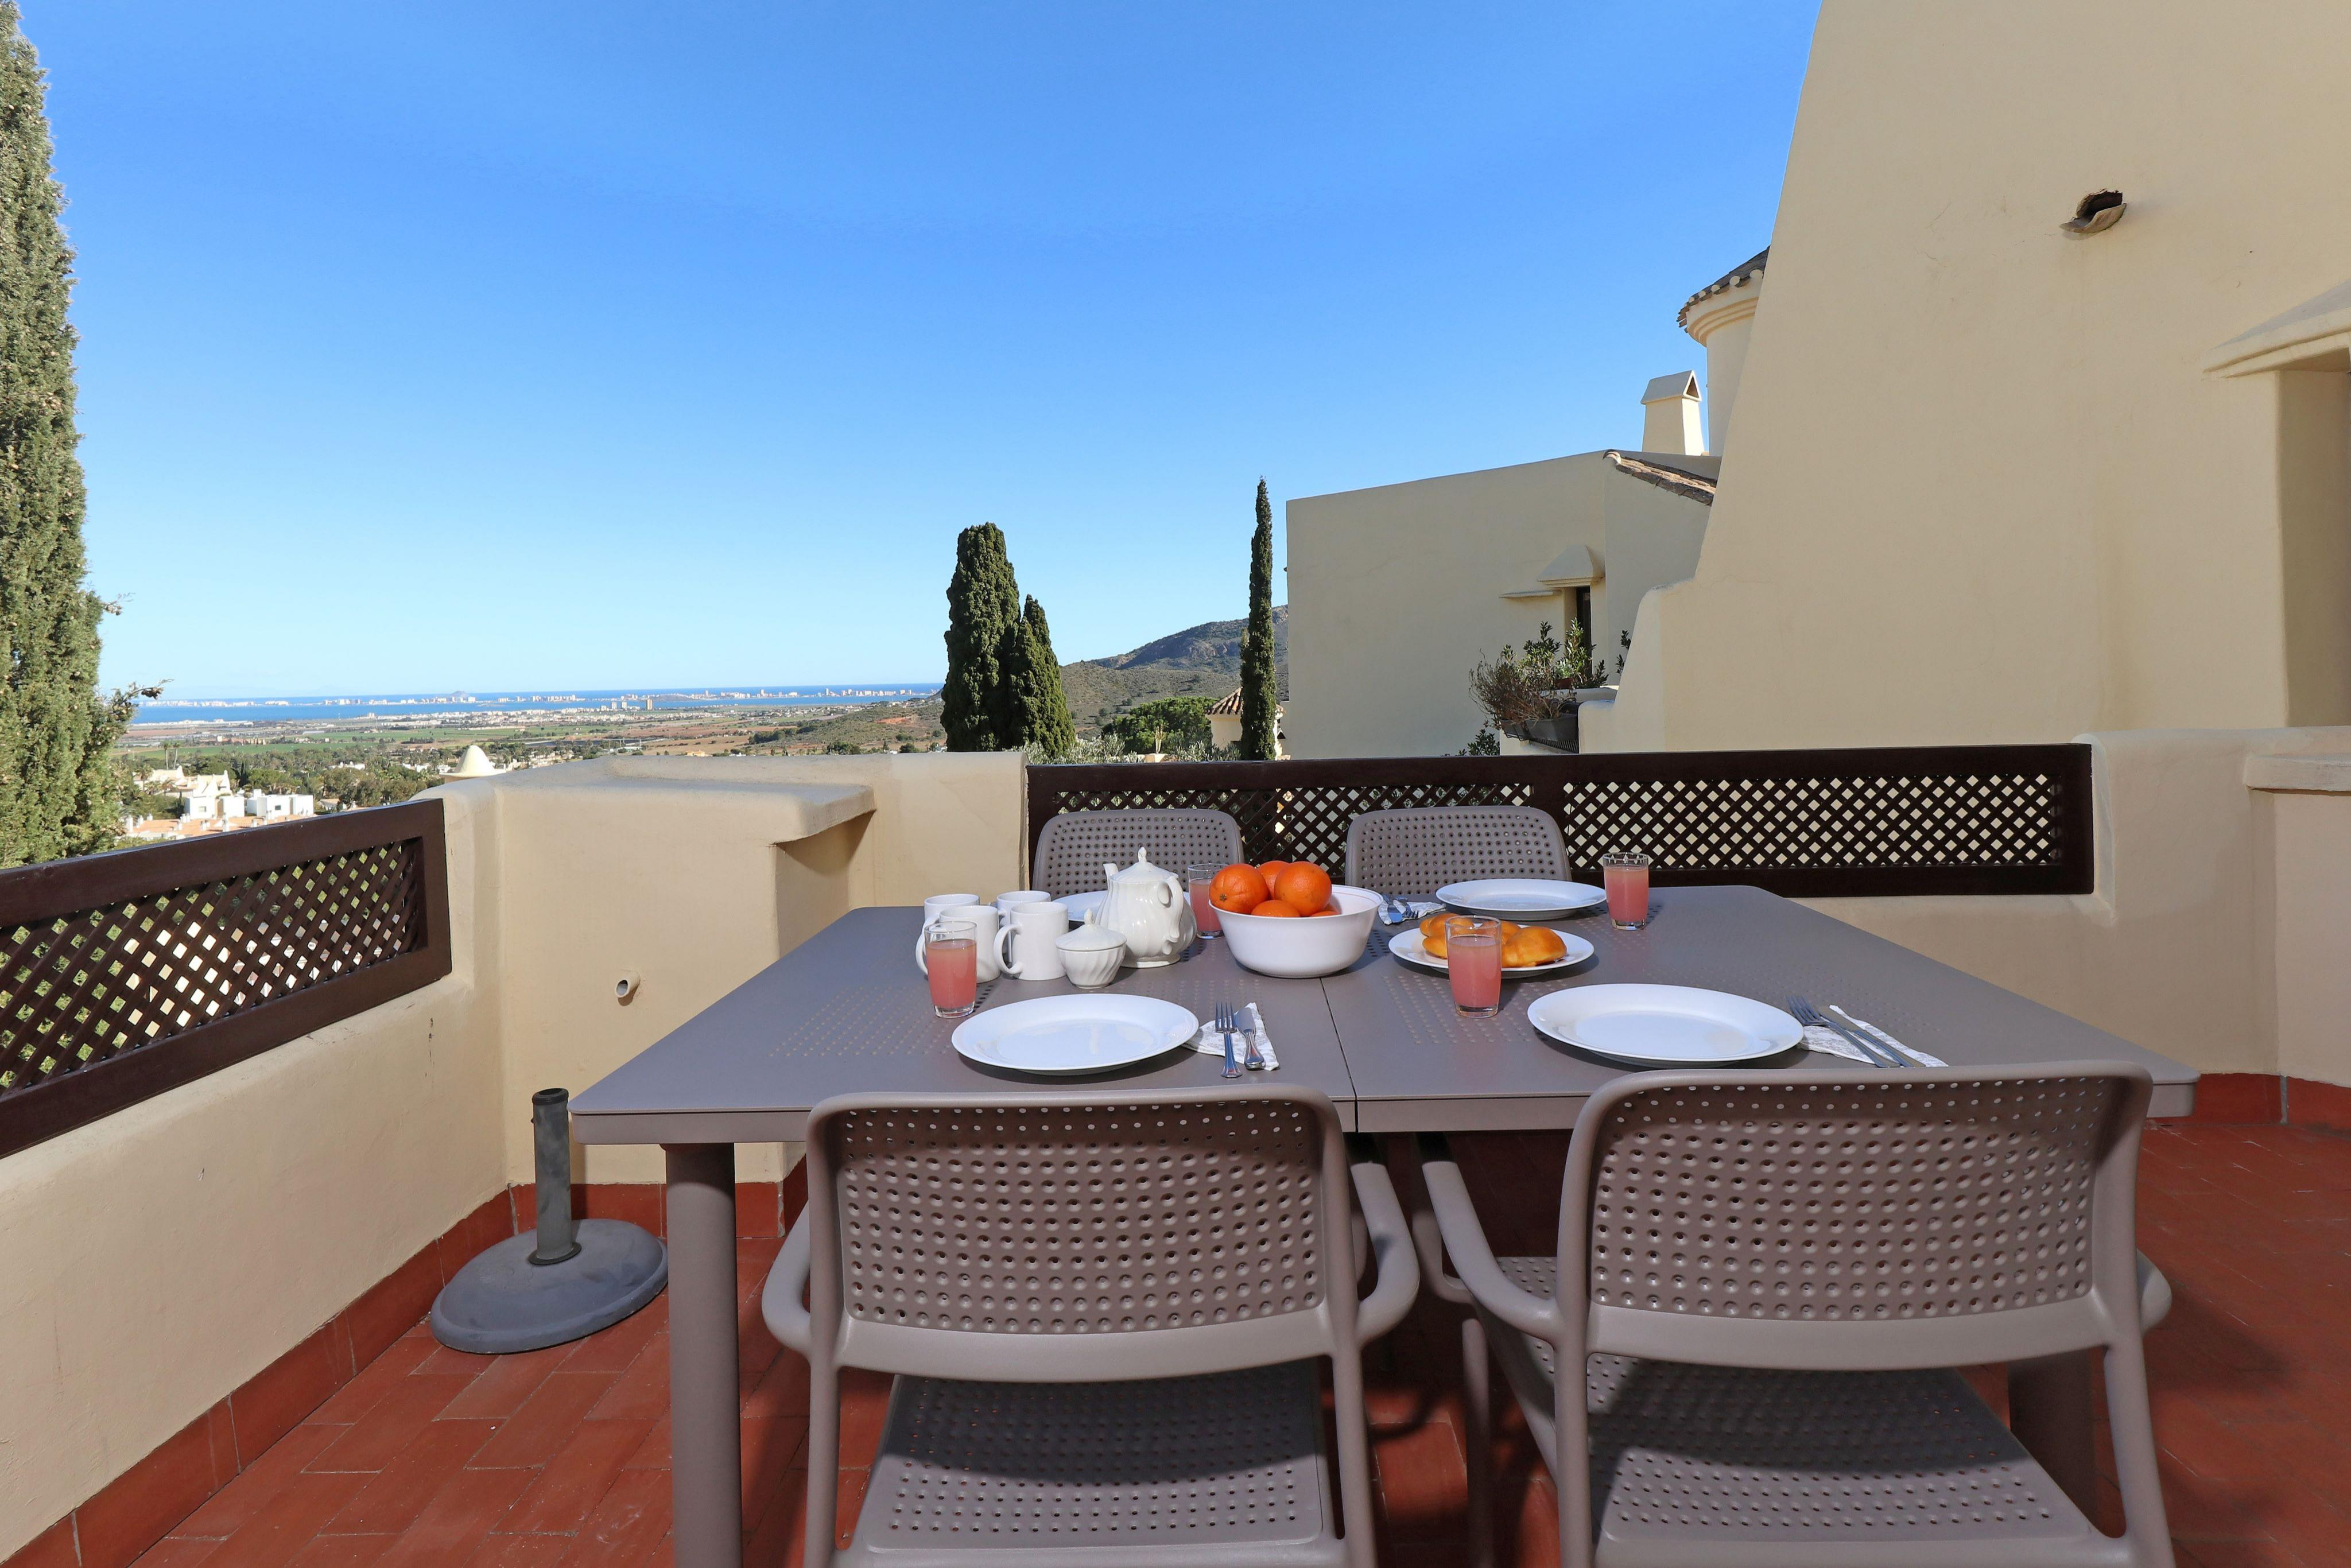 La Manga Club Resort - Los Molinos 567 2 Bedrooms, for rent